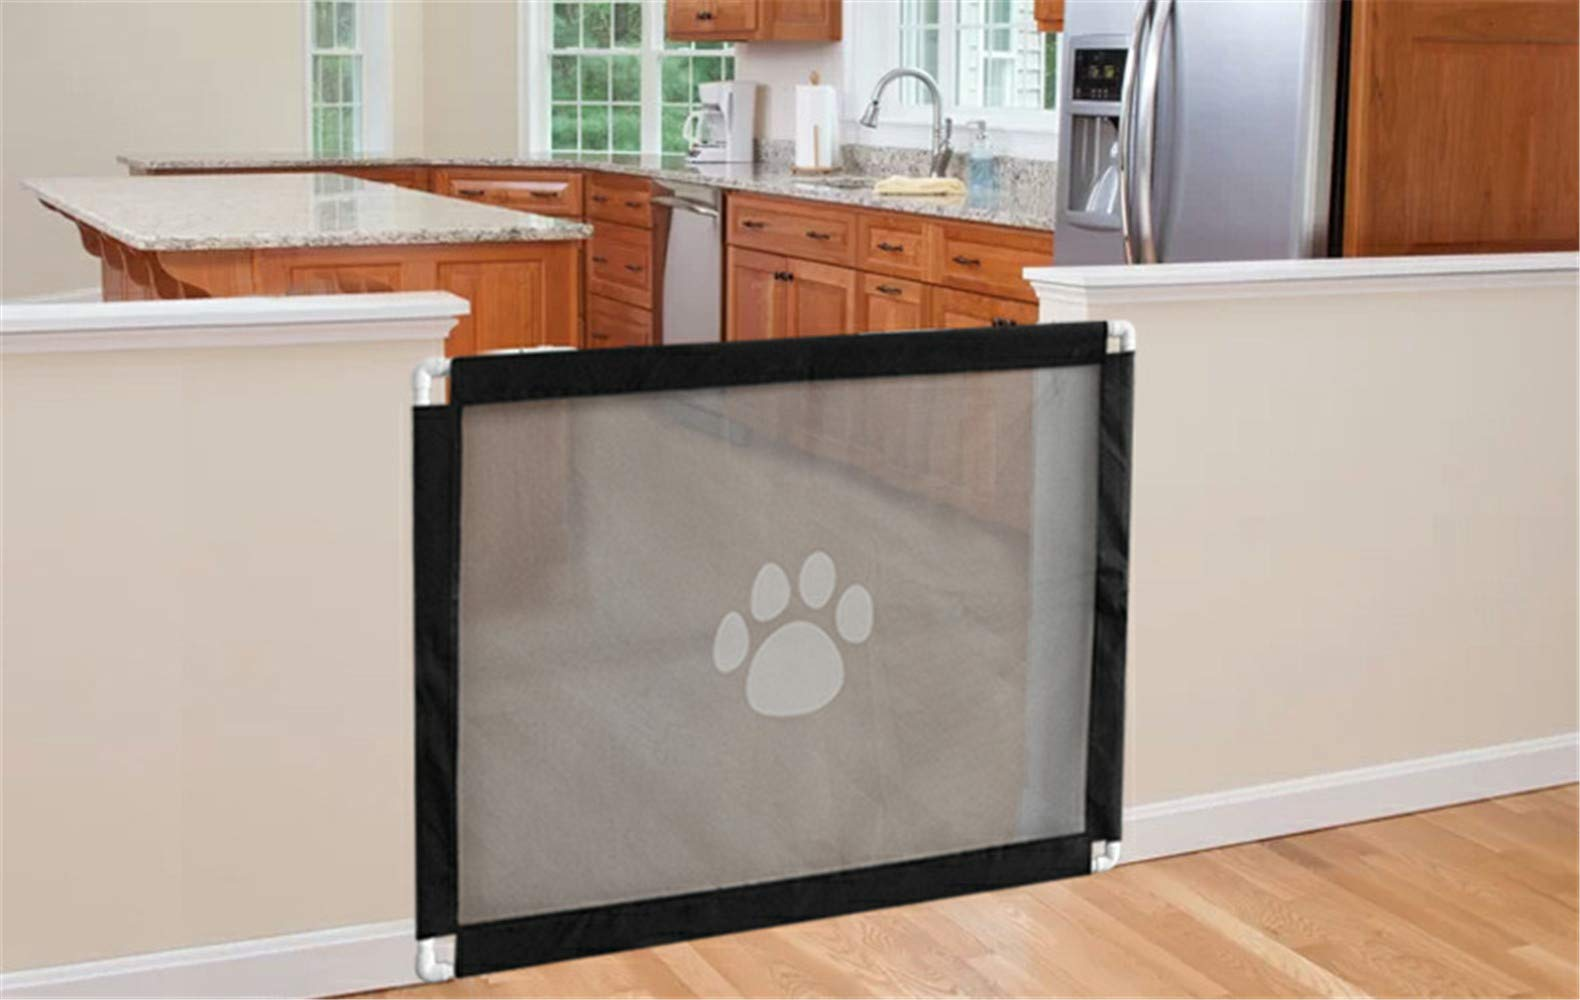 Magic Gate for Dog,Strong Pet Gate Portable Folding Safe Guard Install Anywhere for Pet Safe,Pet Isolation Fence Net by Y&Z (Image #6)